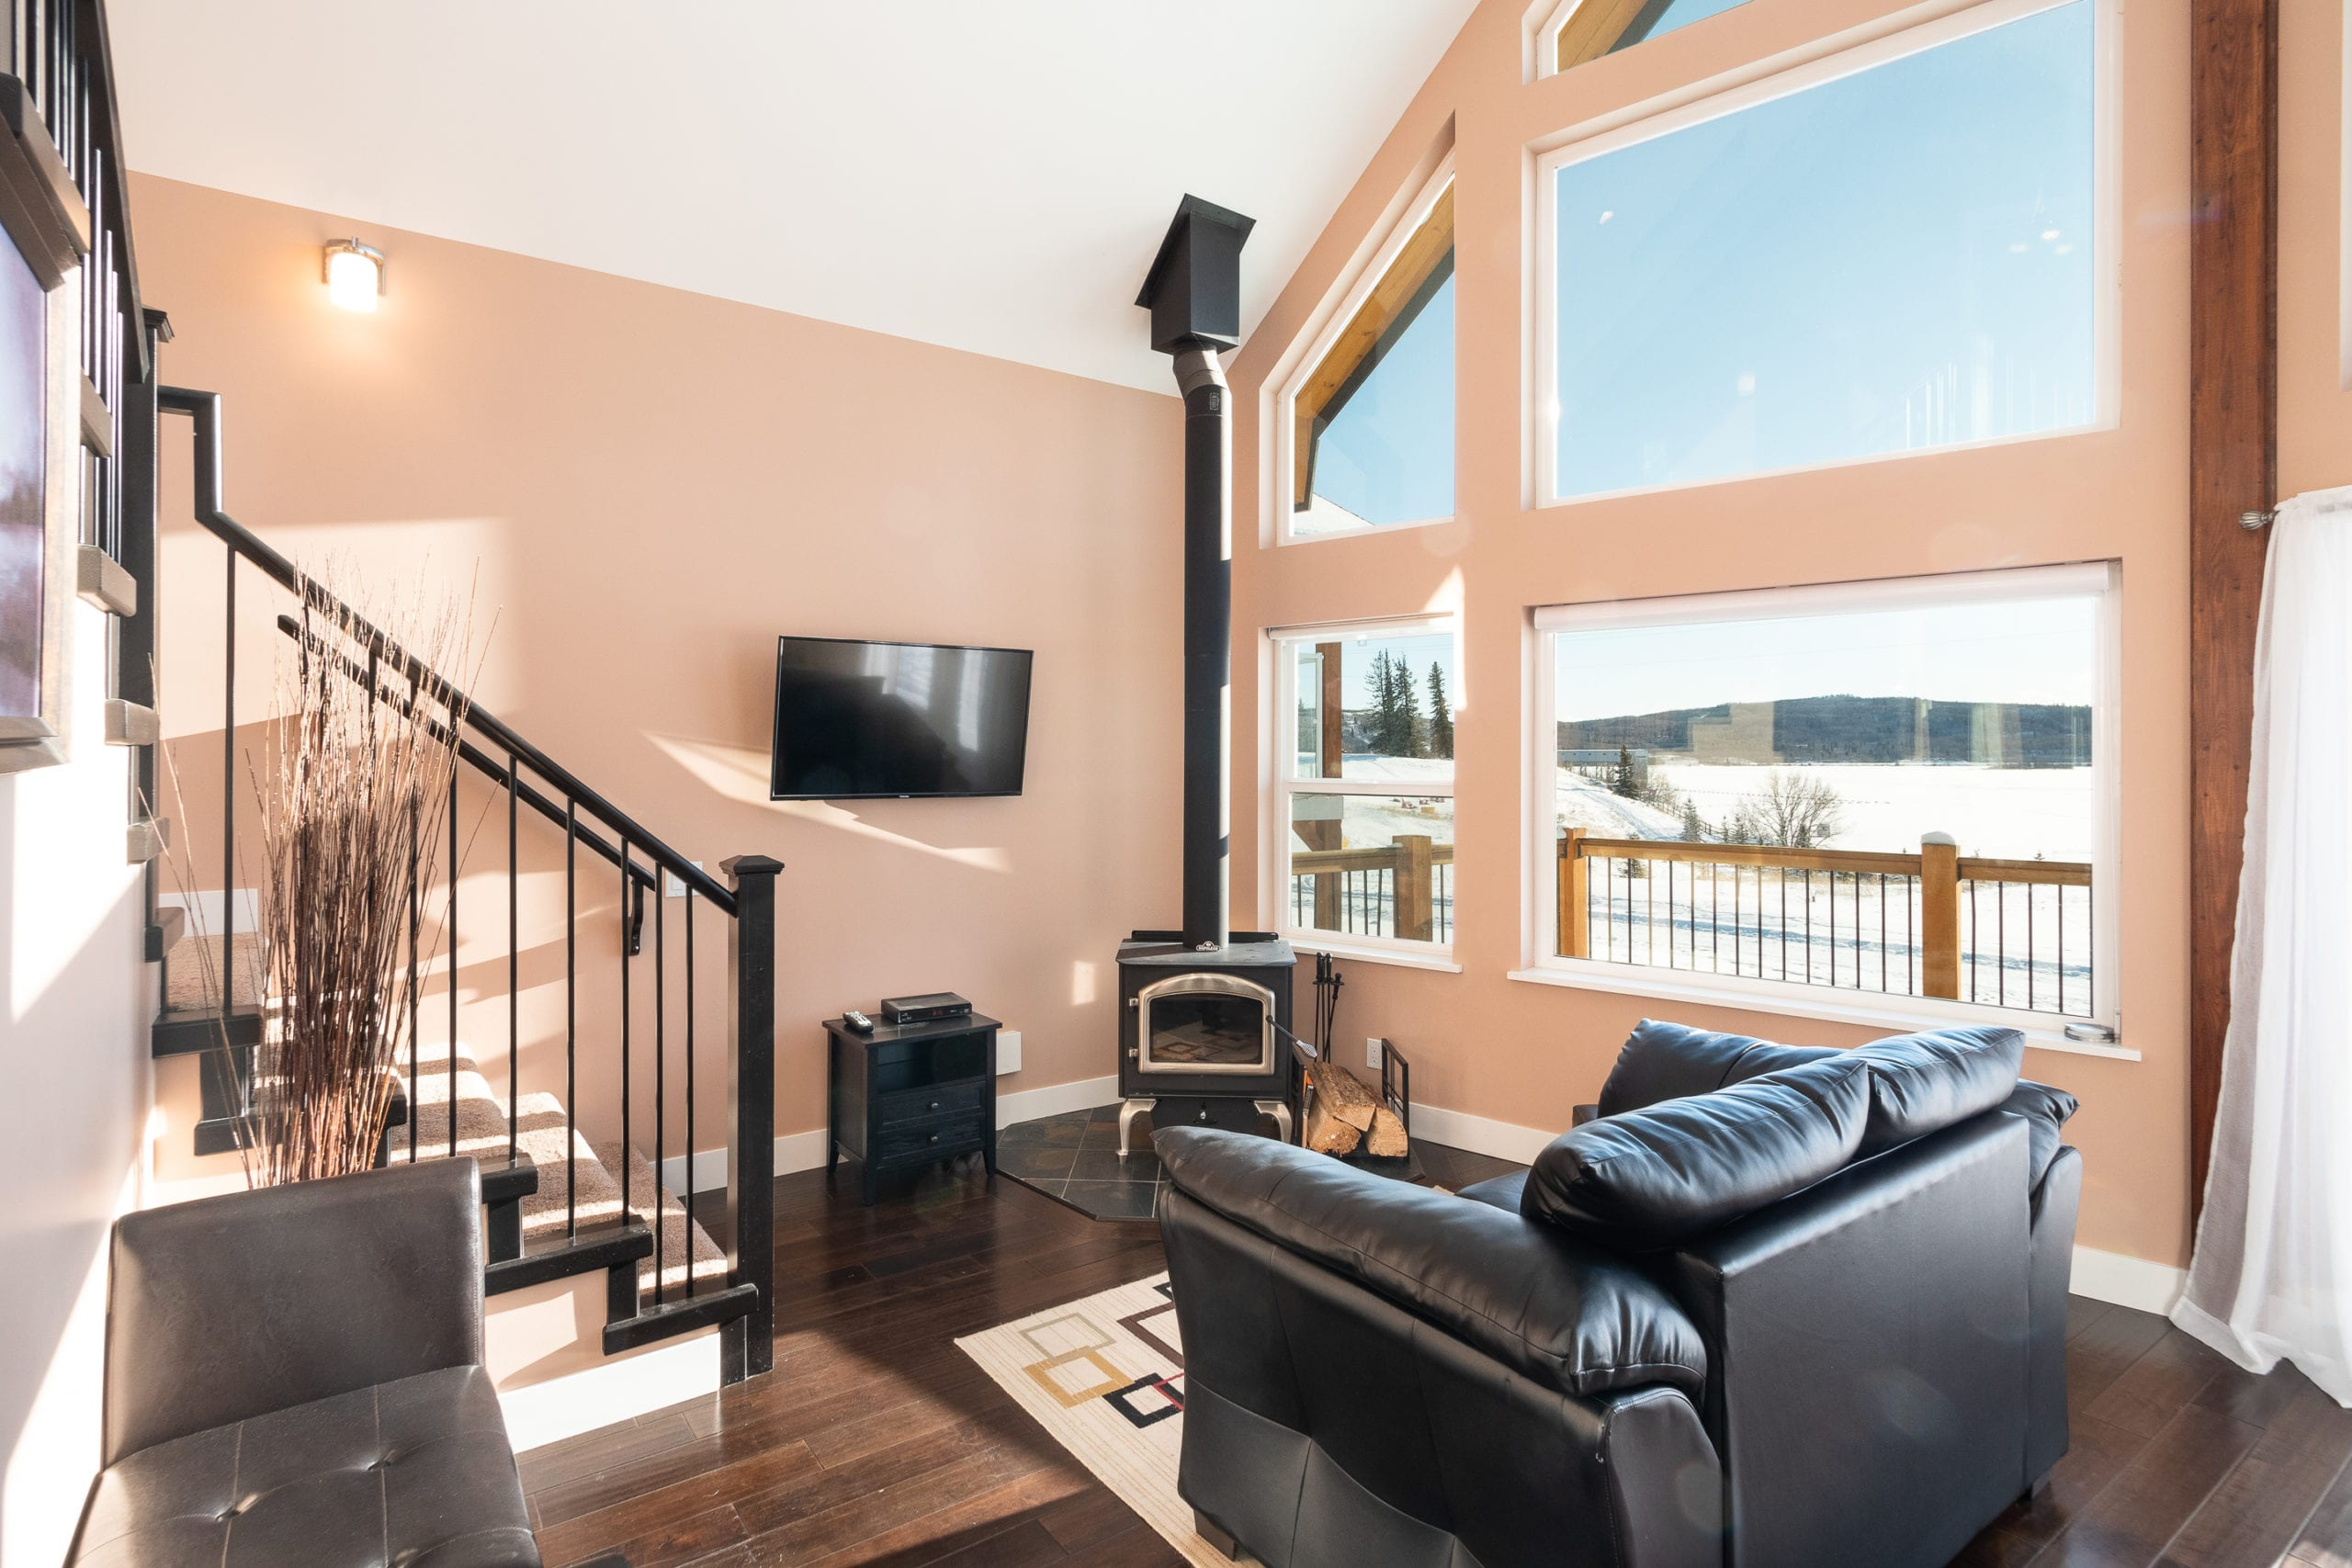 Hello Gorgeous - 456 Cottageclub Cove, Rocky View No. 44, AB - Tara Molina Real Estate (19 of 41)